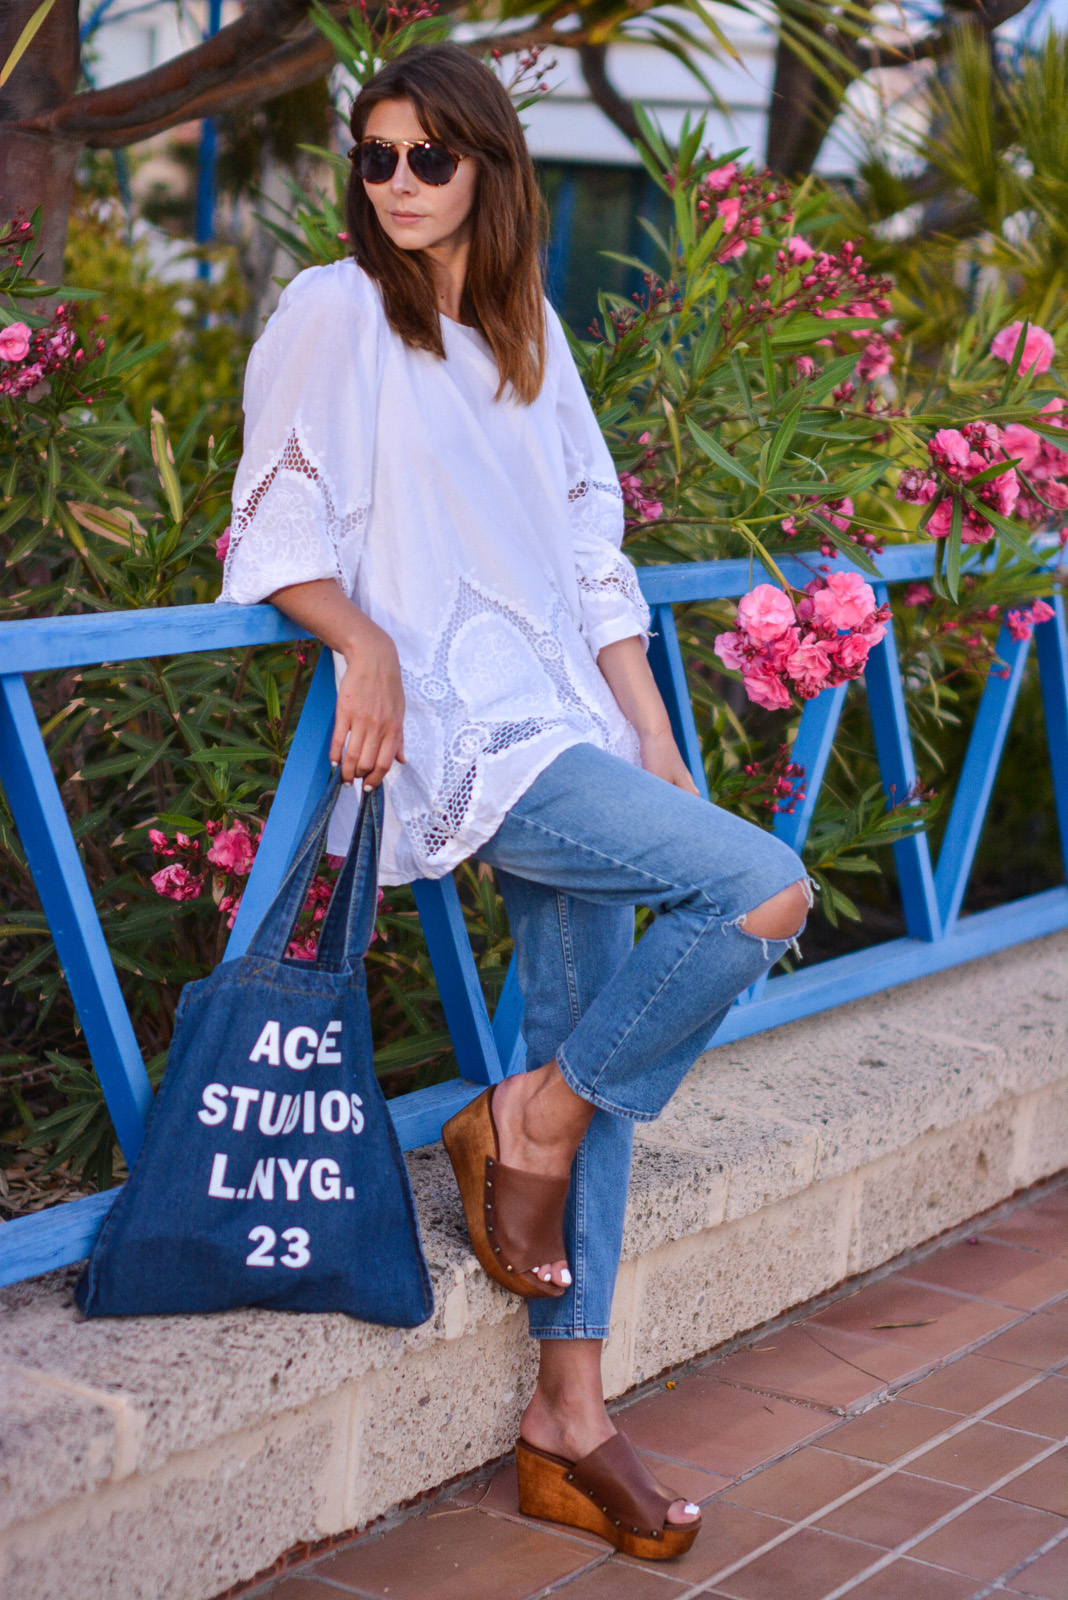 EJSTYLE - Emma Hill wears Acne Studios printed denim tote bag, white summer top with cut out embroidered detail, mASOS thea girlfriend jeans, Dune Keera wedge sandals, Asos aviator sunglasses, OOTD, summer style